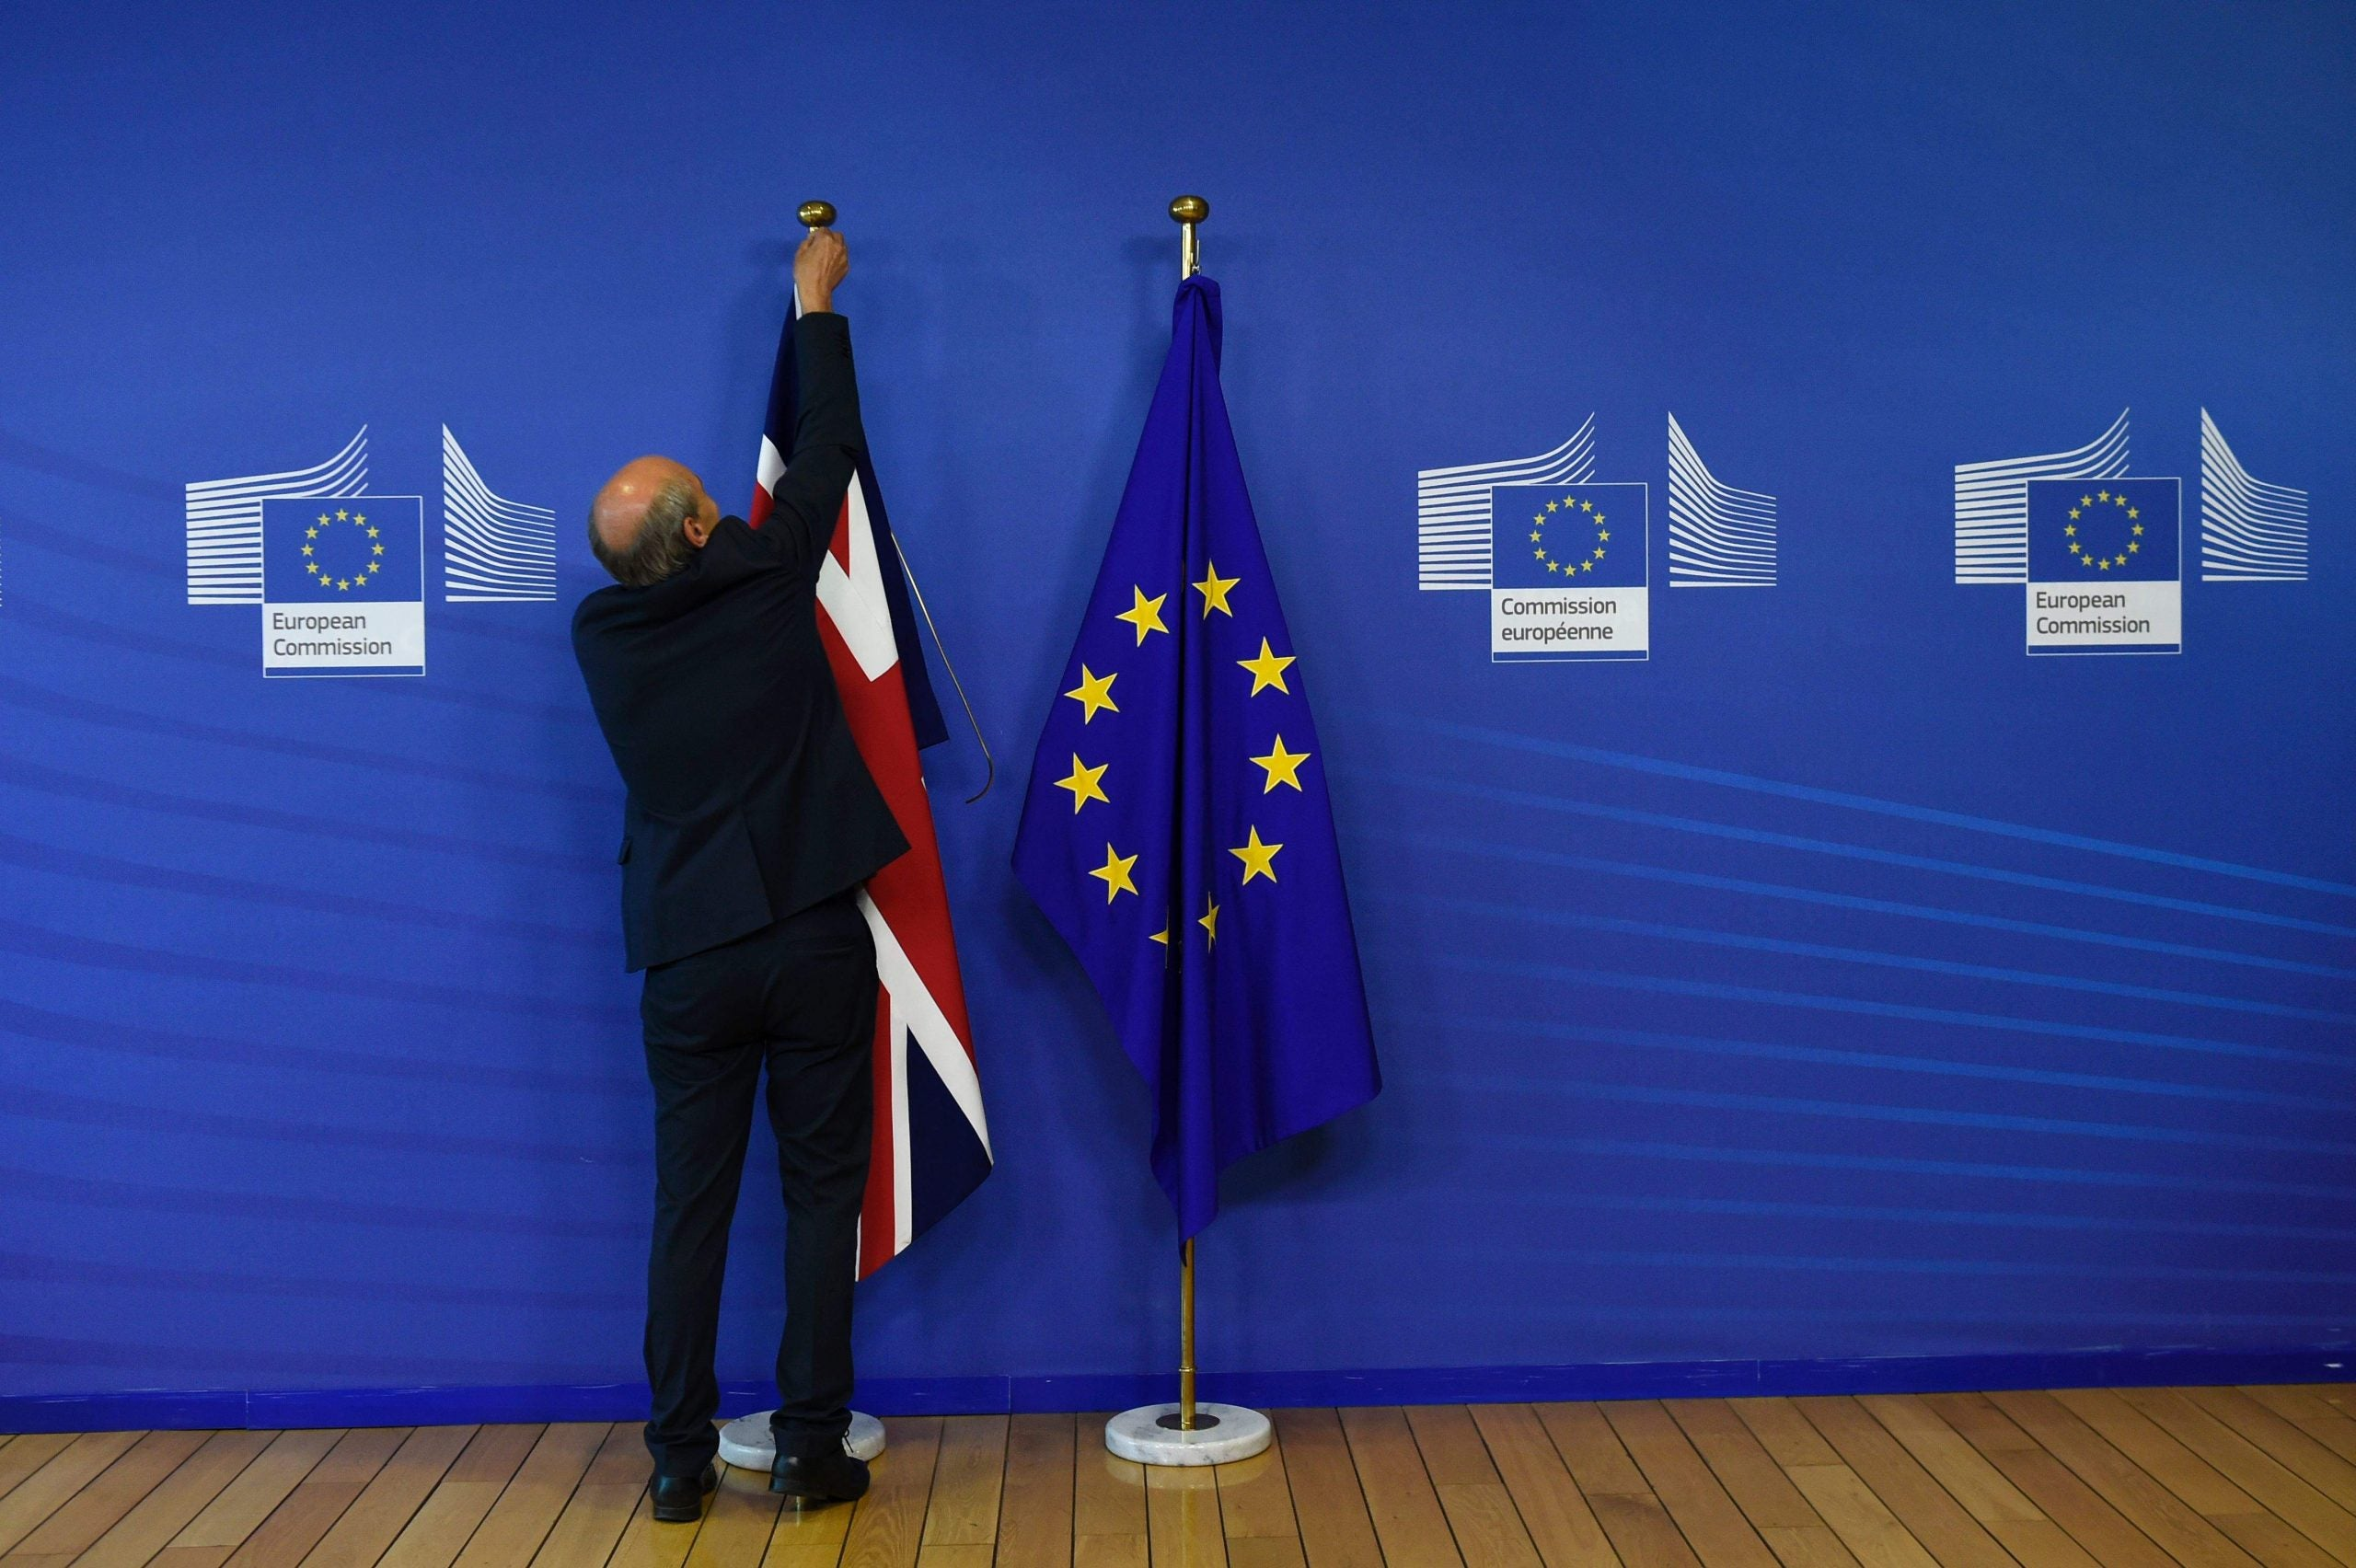 Cancelling Brexit - what would happen if we changed our mind about leaving the EU?